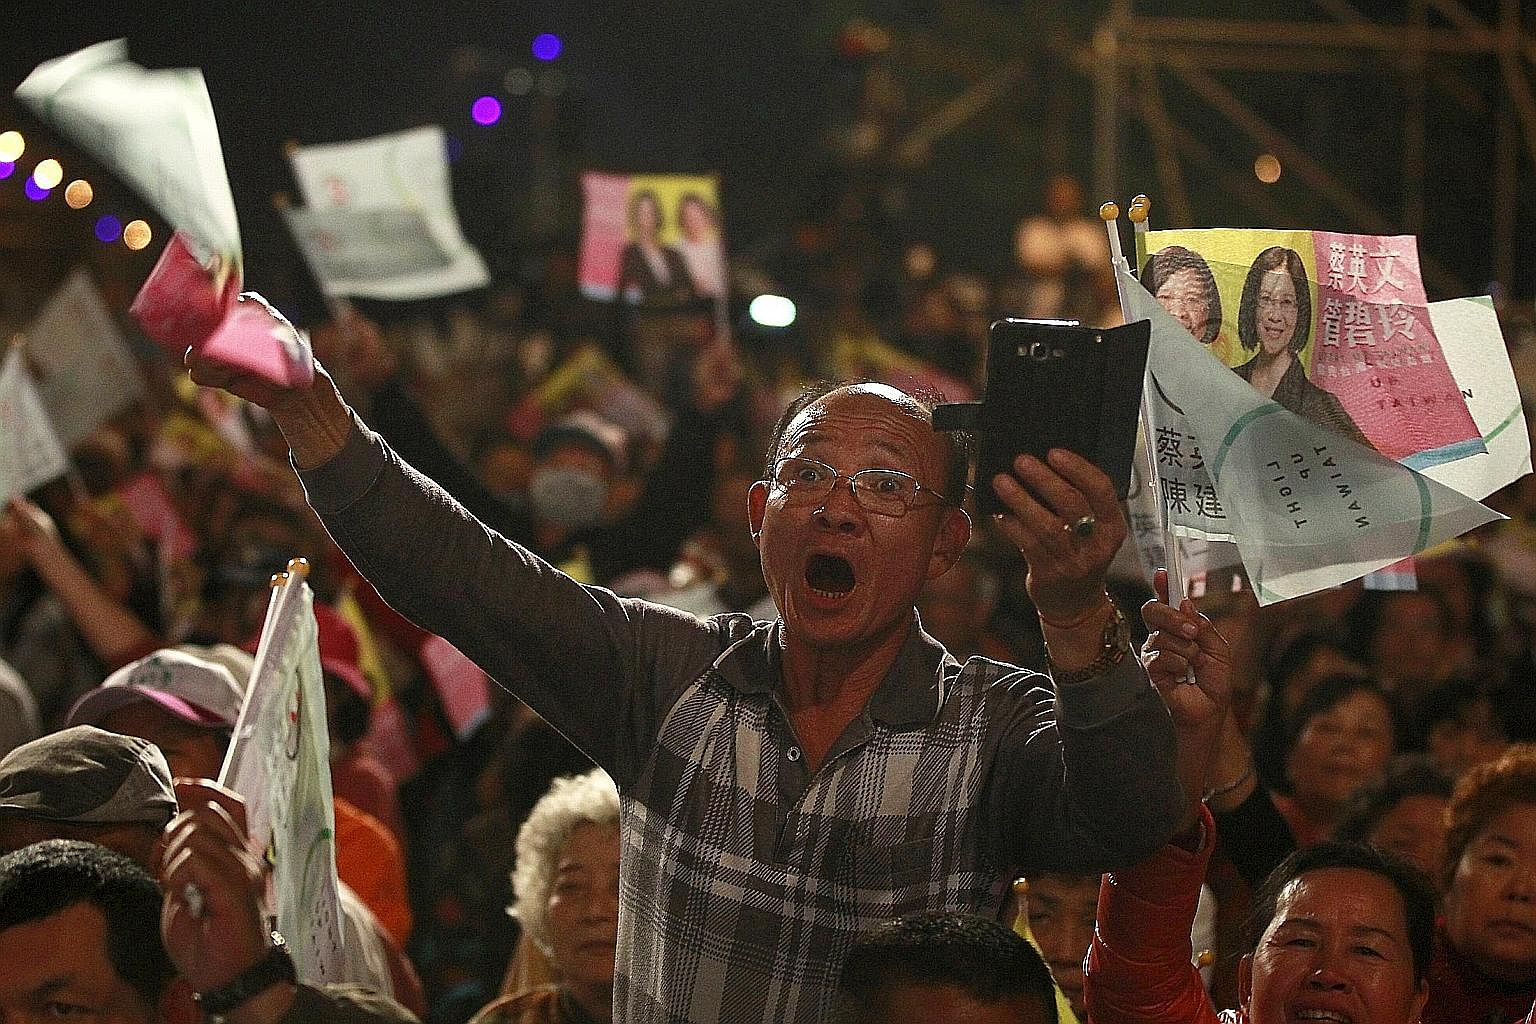 Supporters of DPP presidential candidate Tsai Ing-wen at a campaign rally for the 2016 presidential election in Kaohsiung on Saturday. Ms Tsai has been cautious and moderate in expressing her views so far, possibly for the purpose of garnering votes.